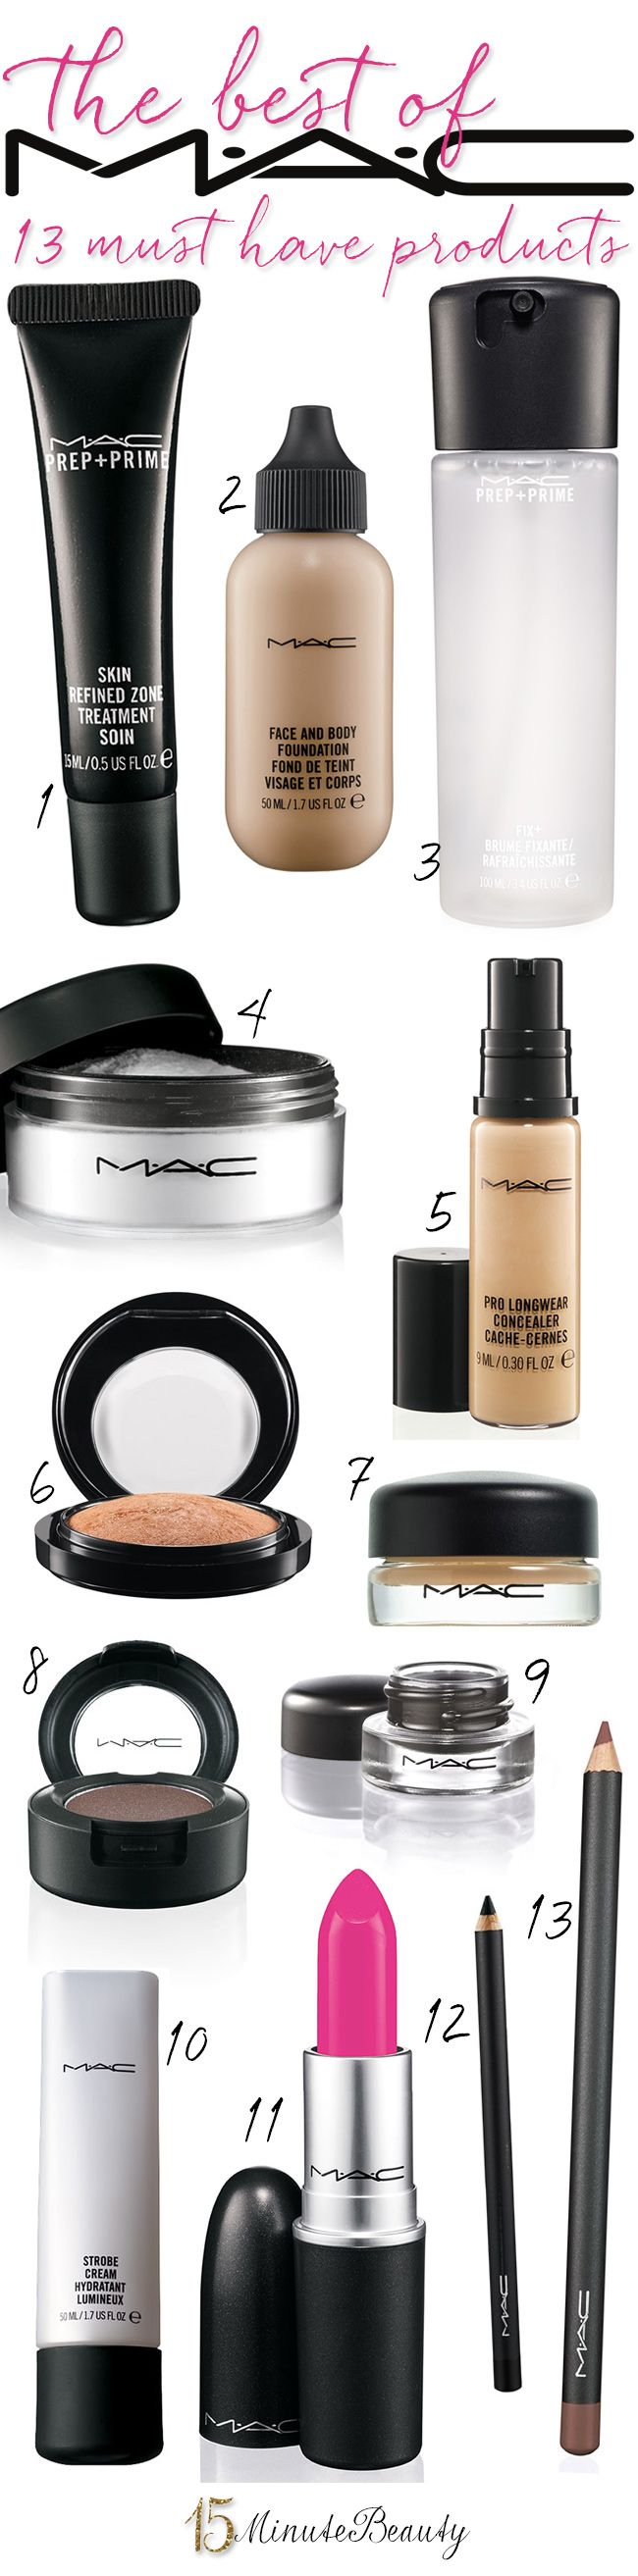 The Best of MAC: The 13 Products You Must Have! via 15MinuteBeauty.com